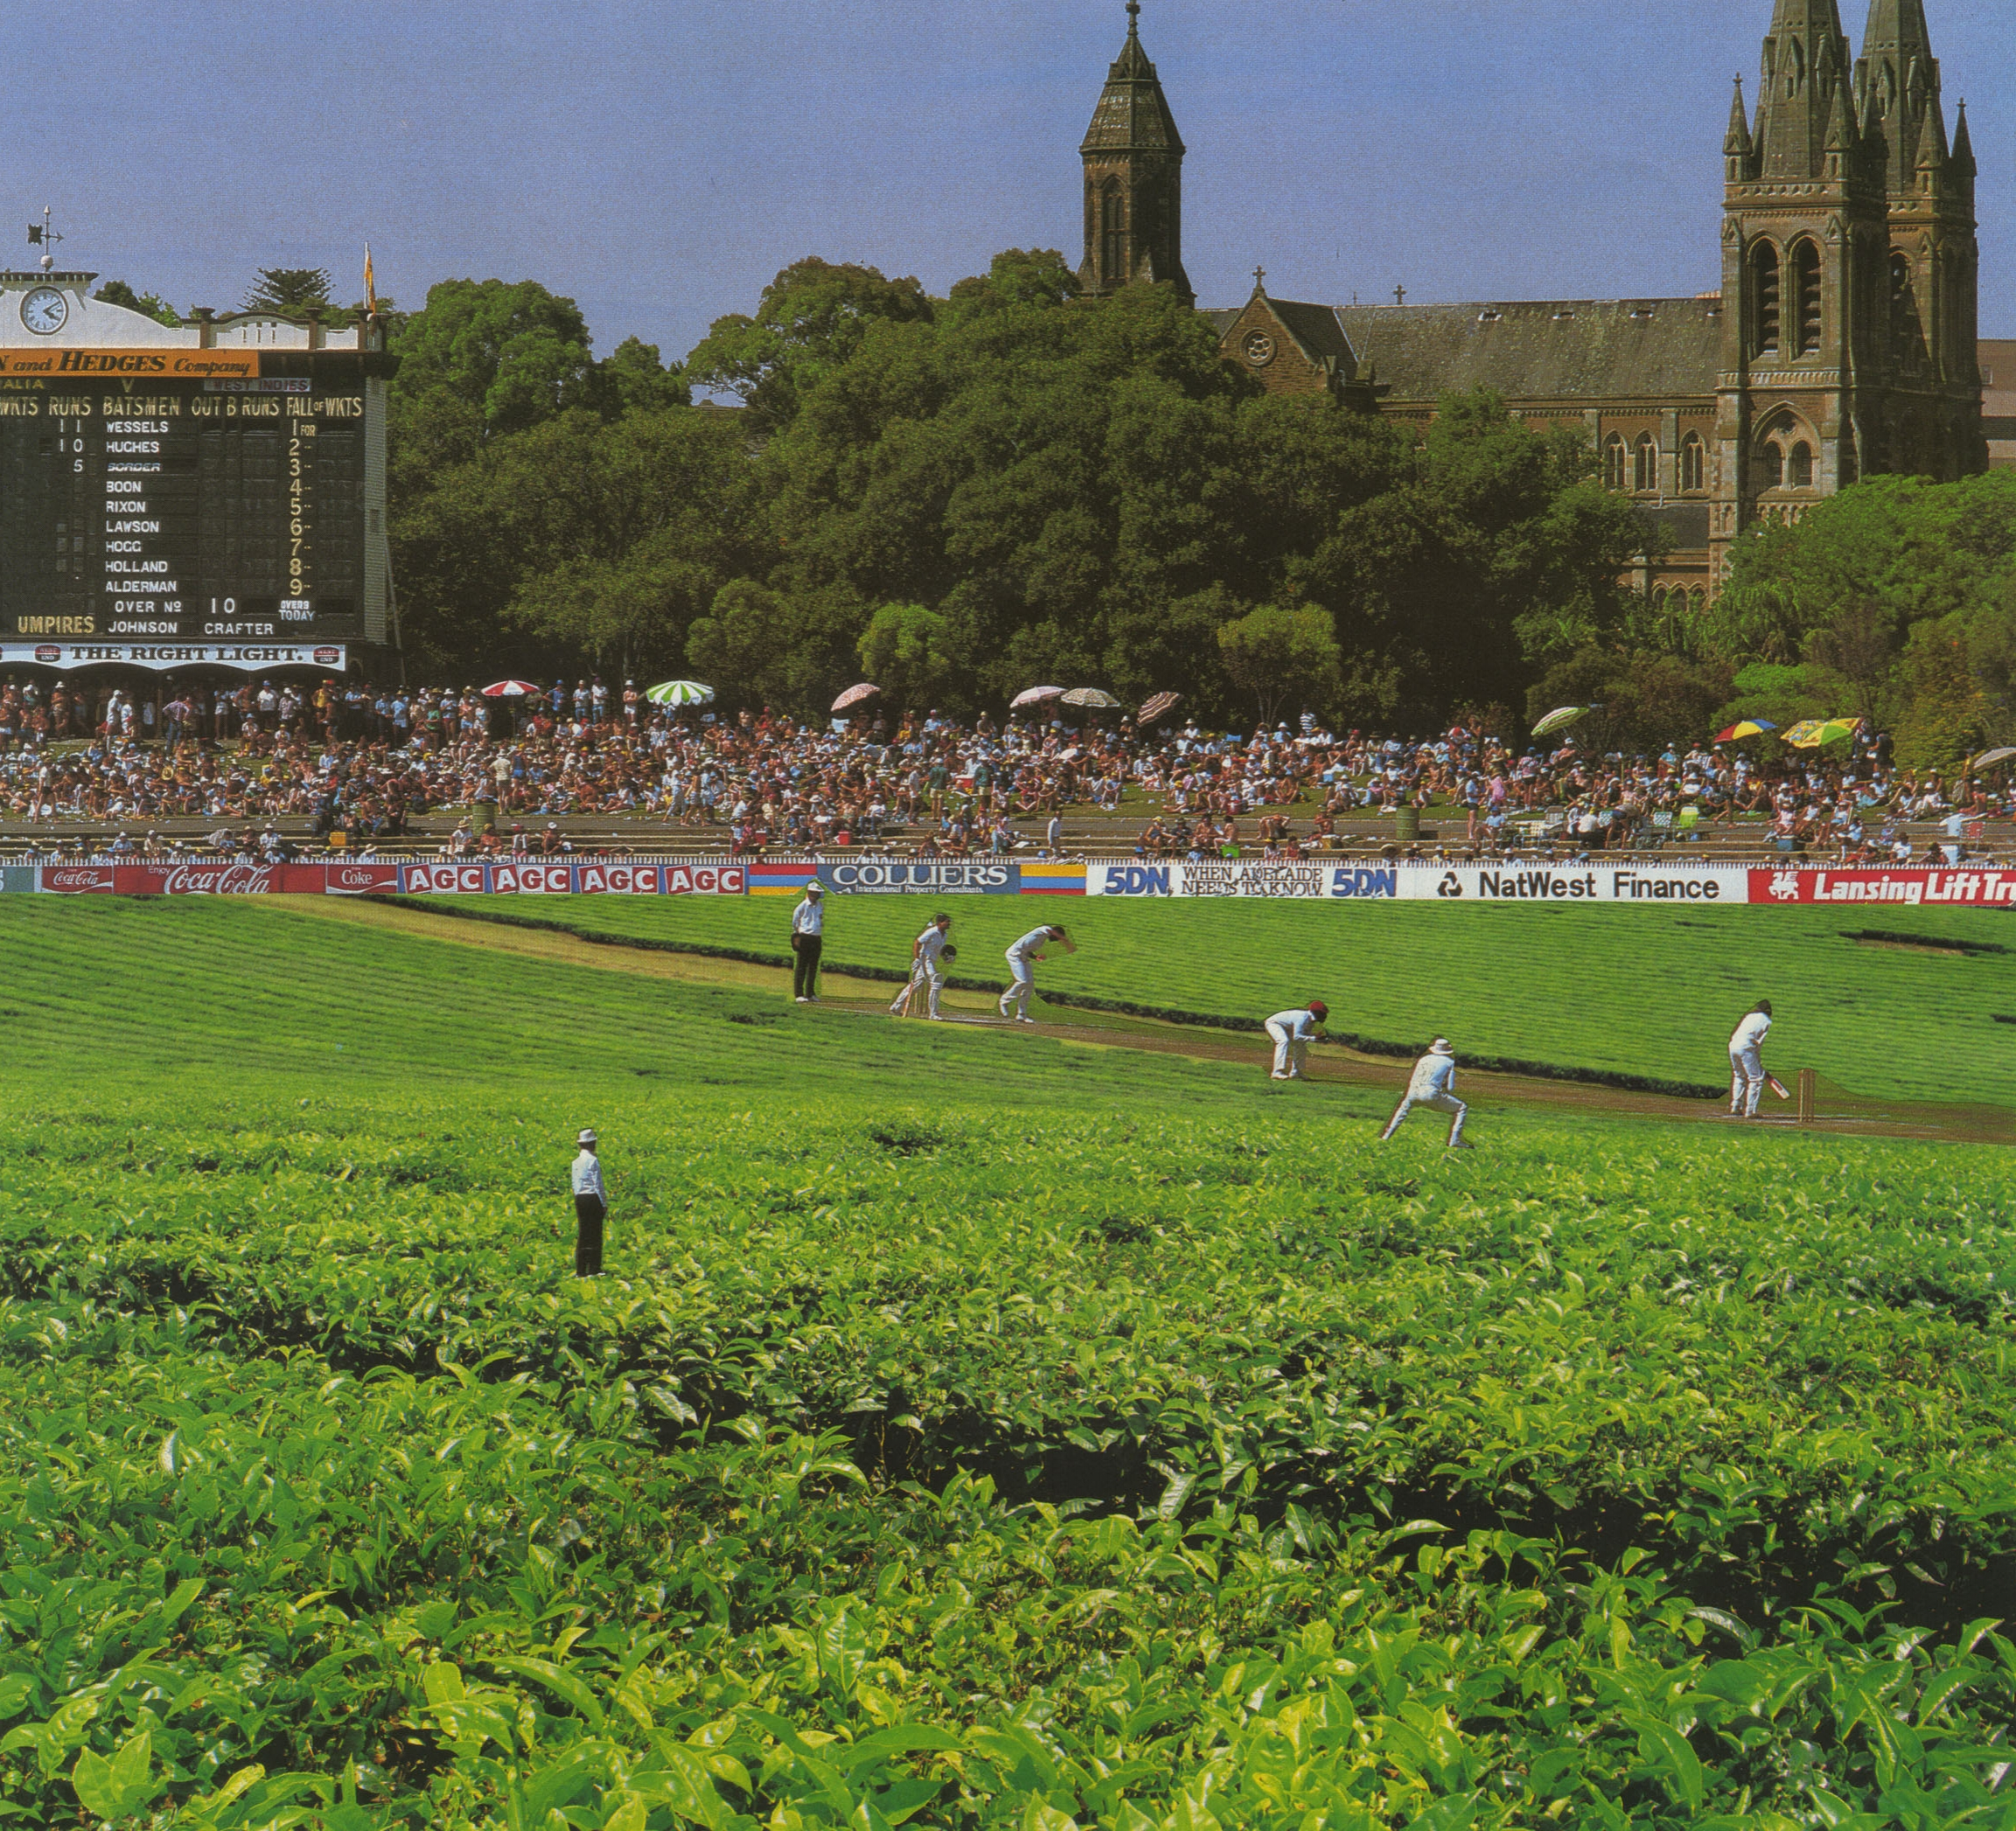 Adelaide Cricket Ground copy.jpg